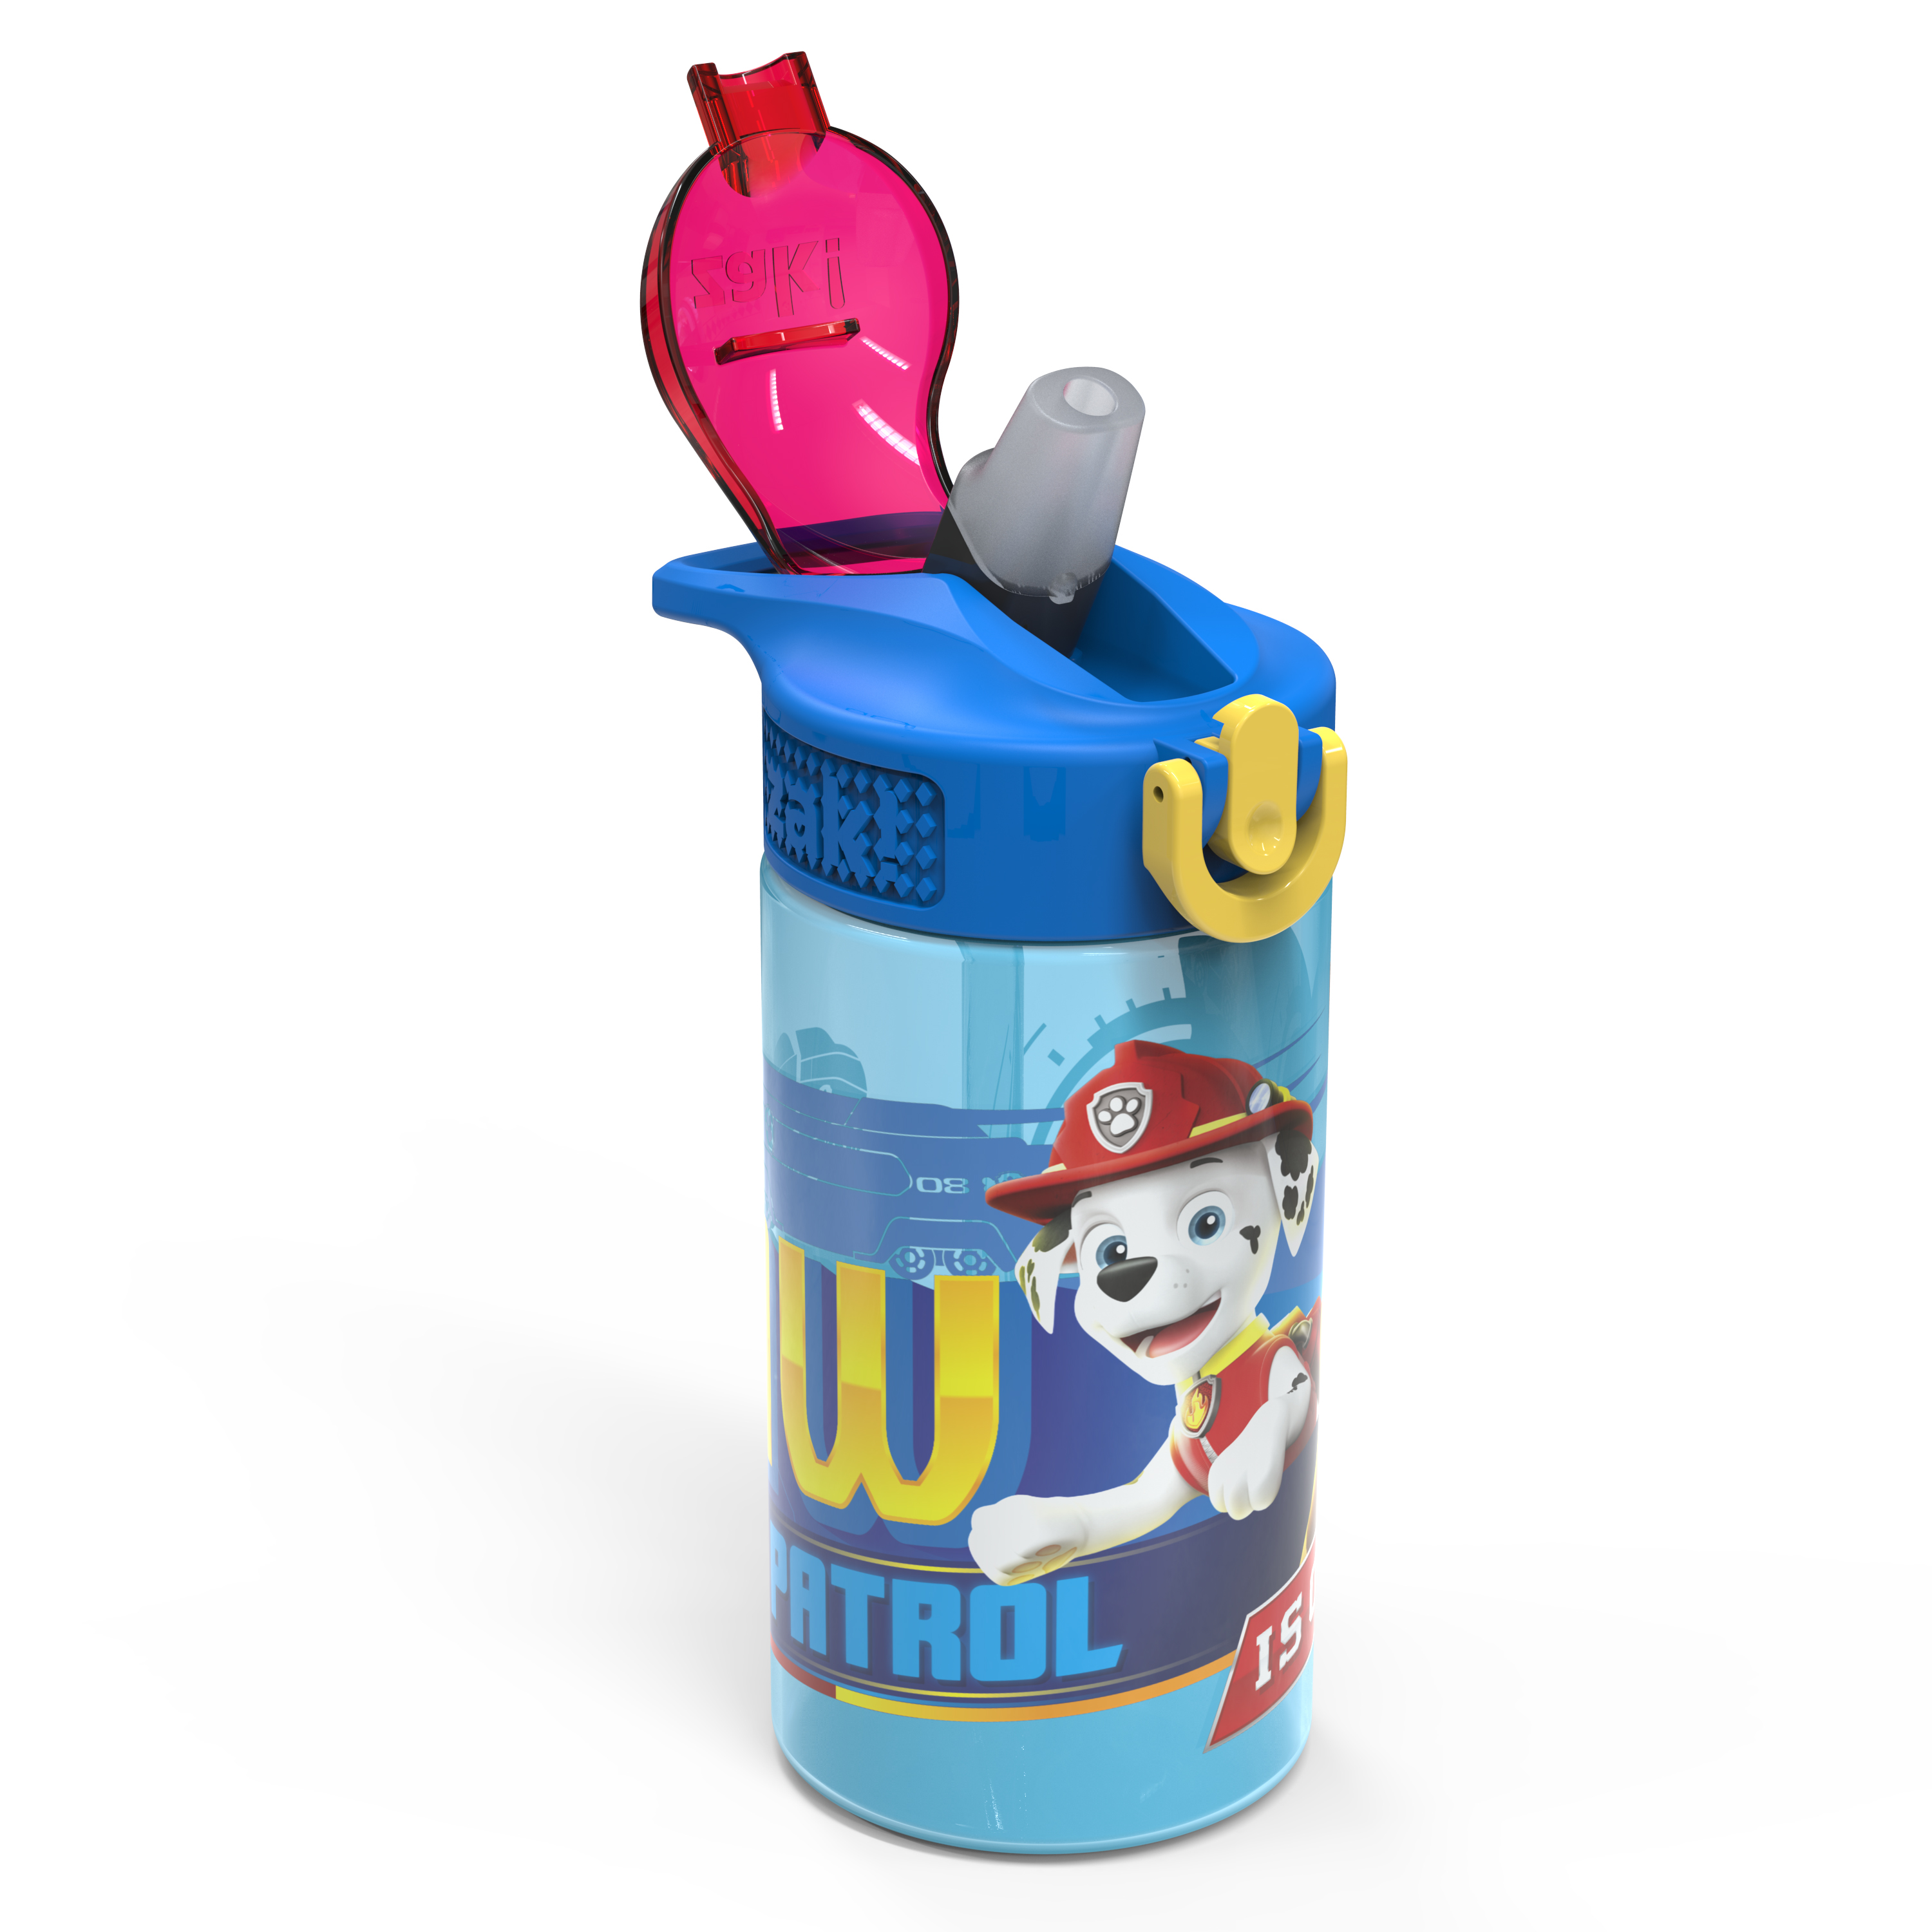 Paw Patrol 16 ounce Reusable Plastic Water Bottle with Straw, Marshall, 2-piece set slideshow image 6